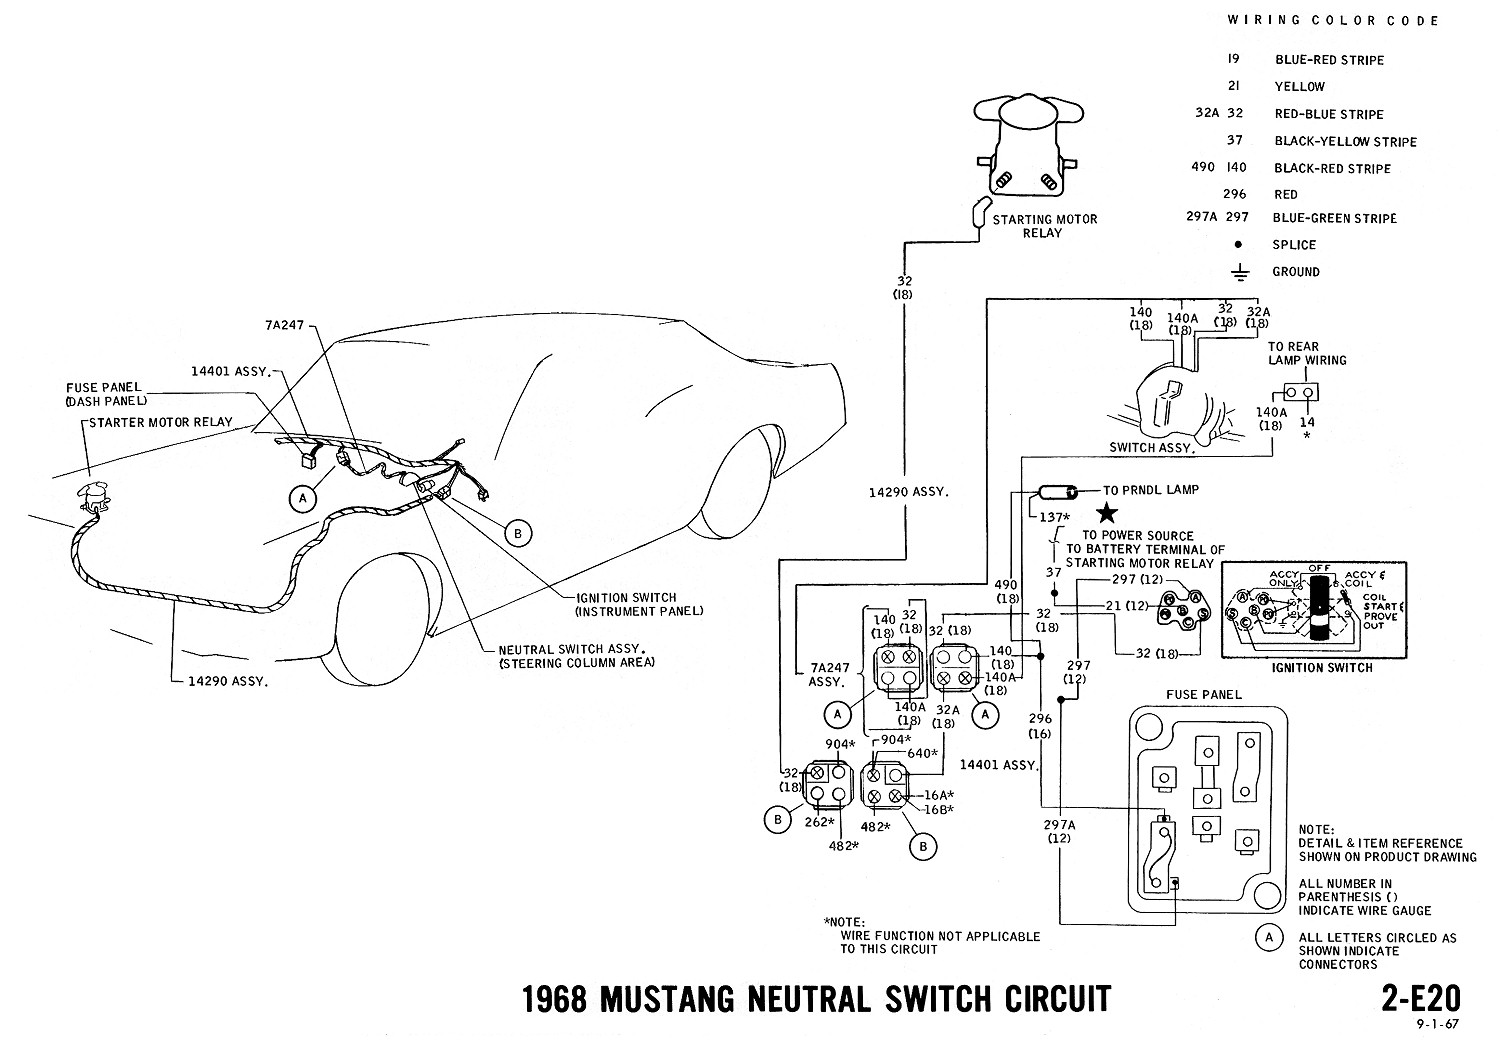 diagram] 68 mustang ignition switch diagram full version hd quality switch  diagram - diagramgol.italintumescenti.it  diagramgol.italintumescenti.it